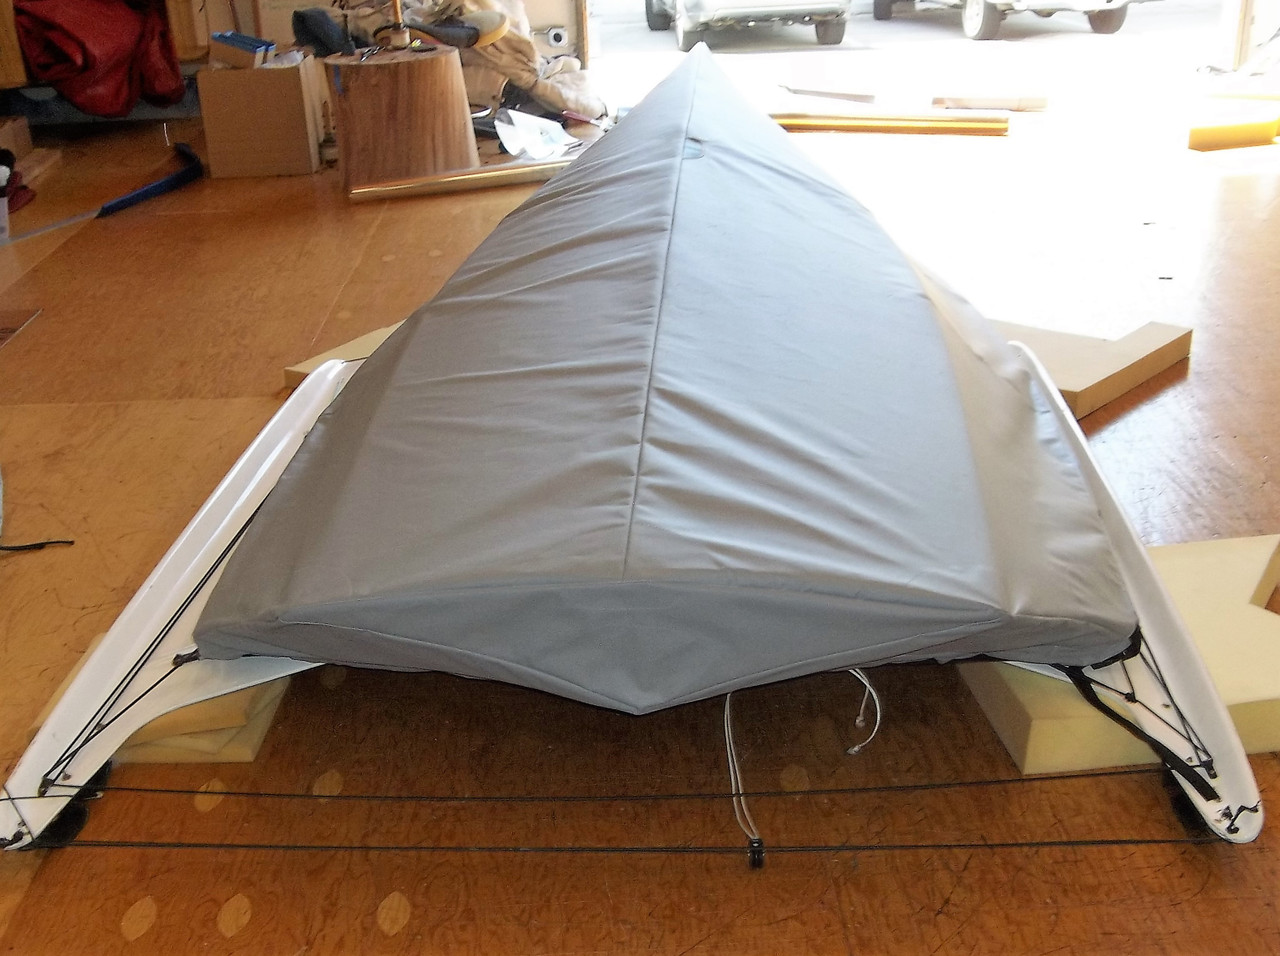 49er sailboat Hull Cover by SLO Sail and Canvas